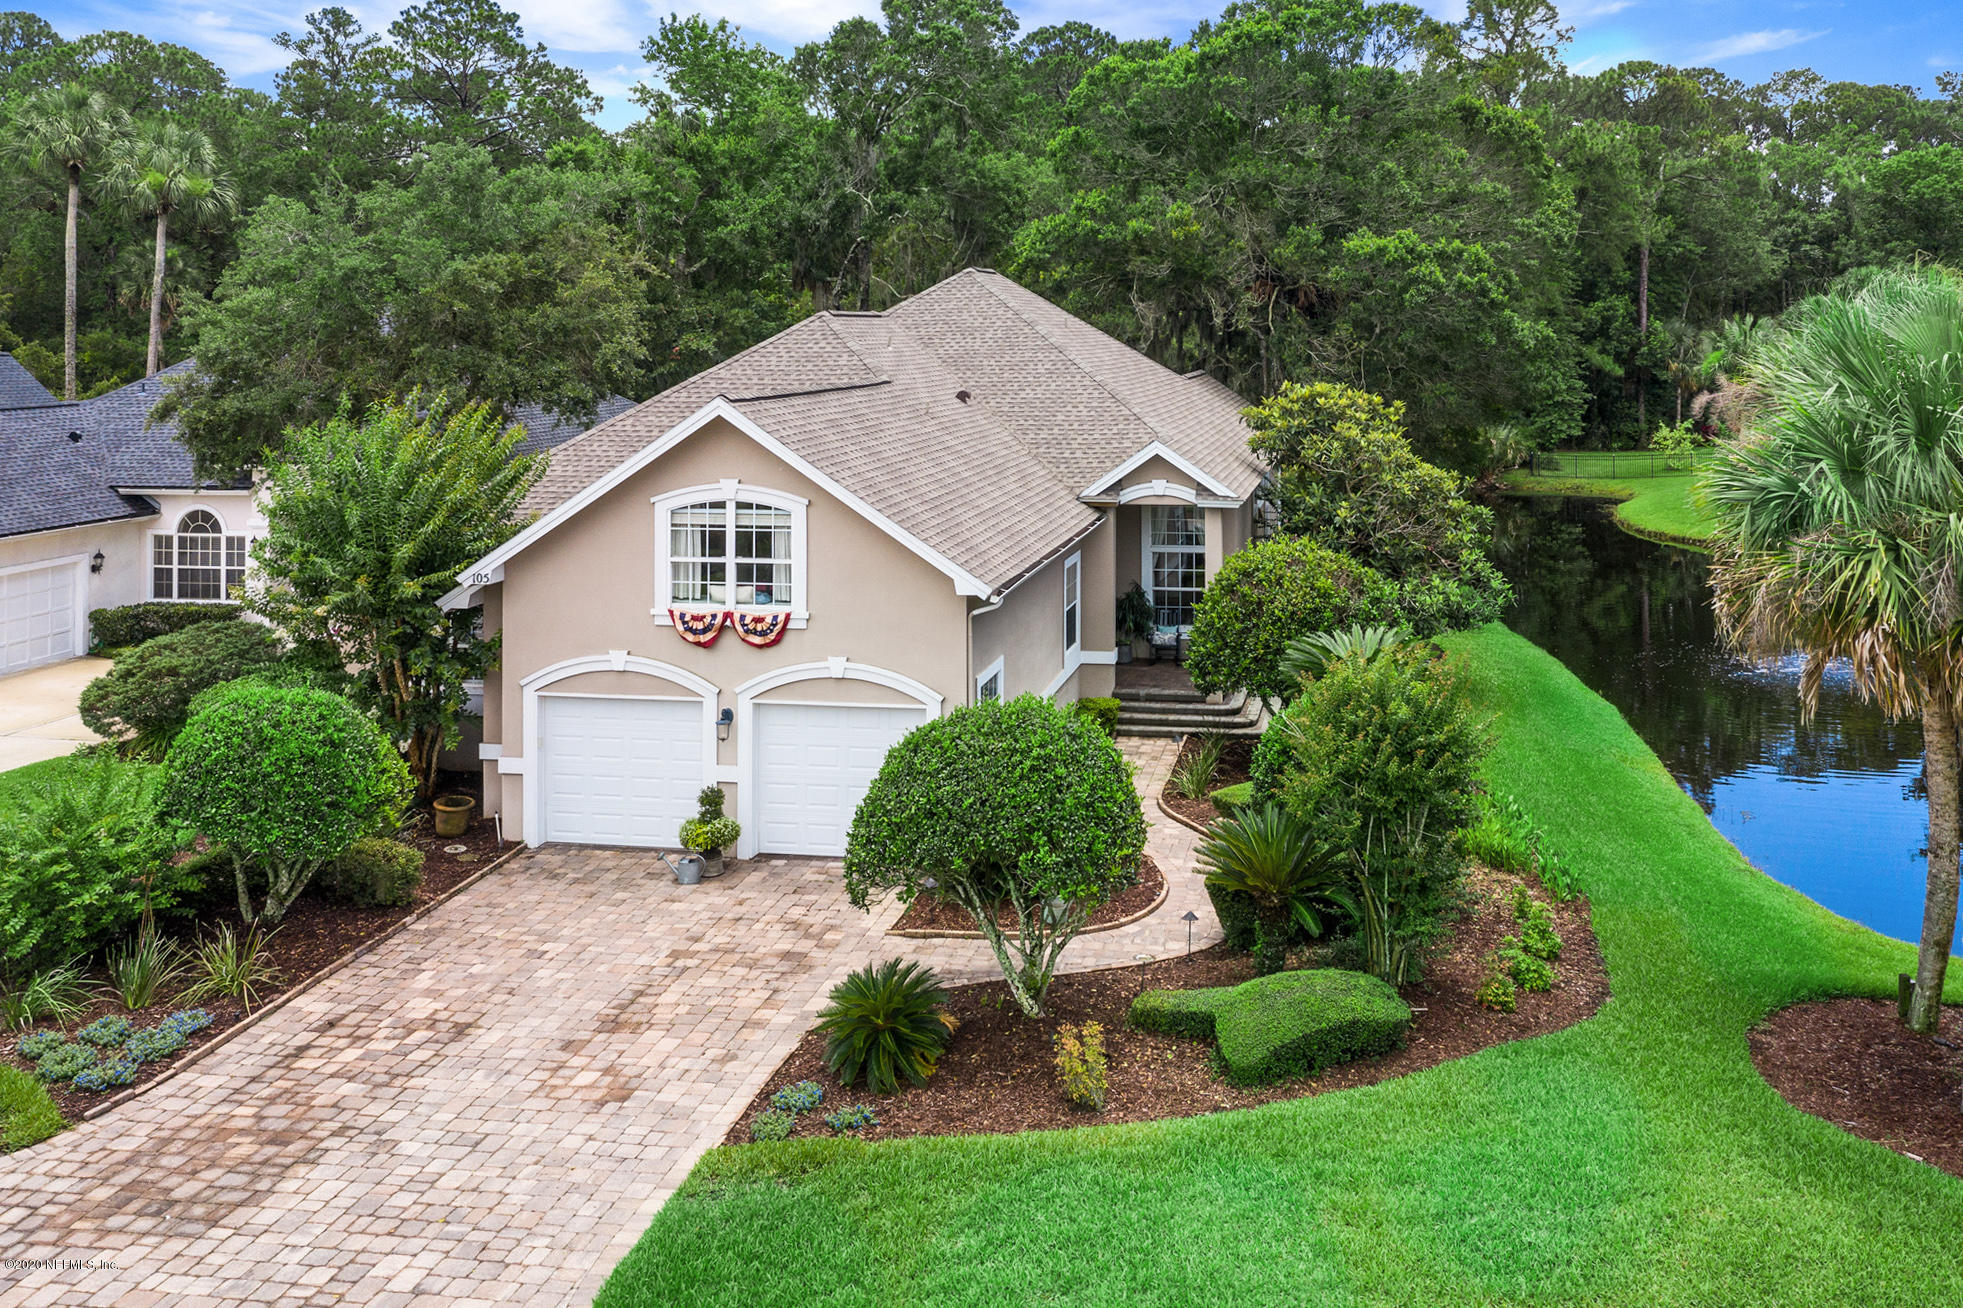 105 DEER LAKE, PONTE VEDRA BEACH, FLORIDA 32082, 4 Bedrooms Bedrooms, ,3 BathroomsBathrooms,Residential,For sale,DEER LAKE,1057907